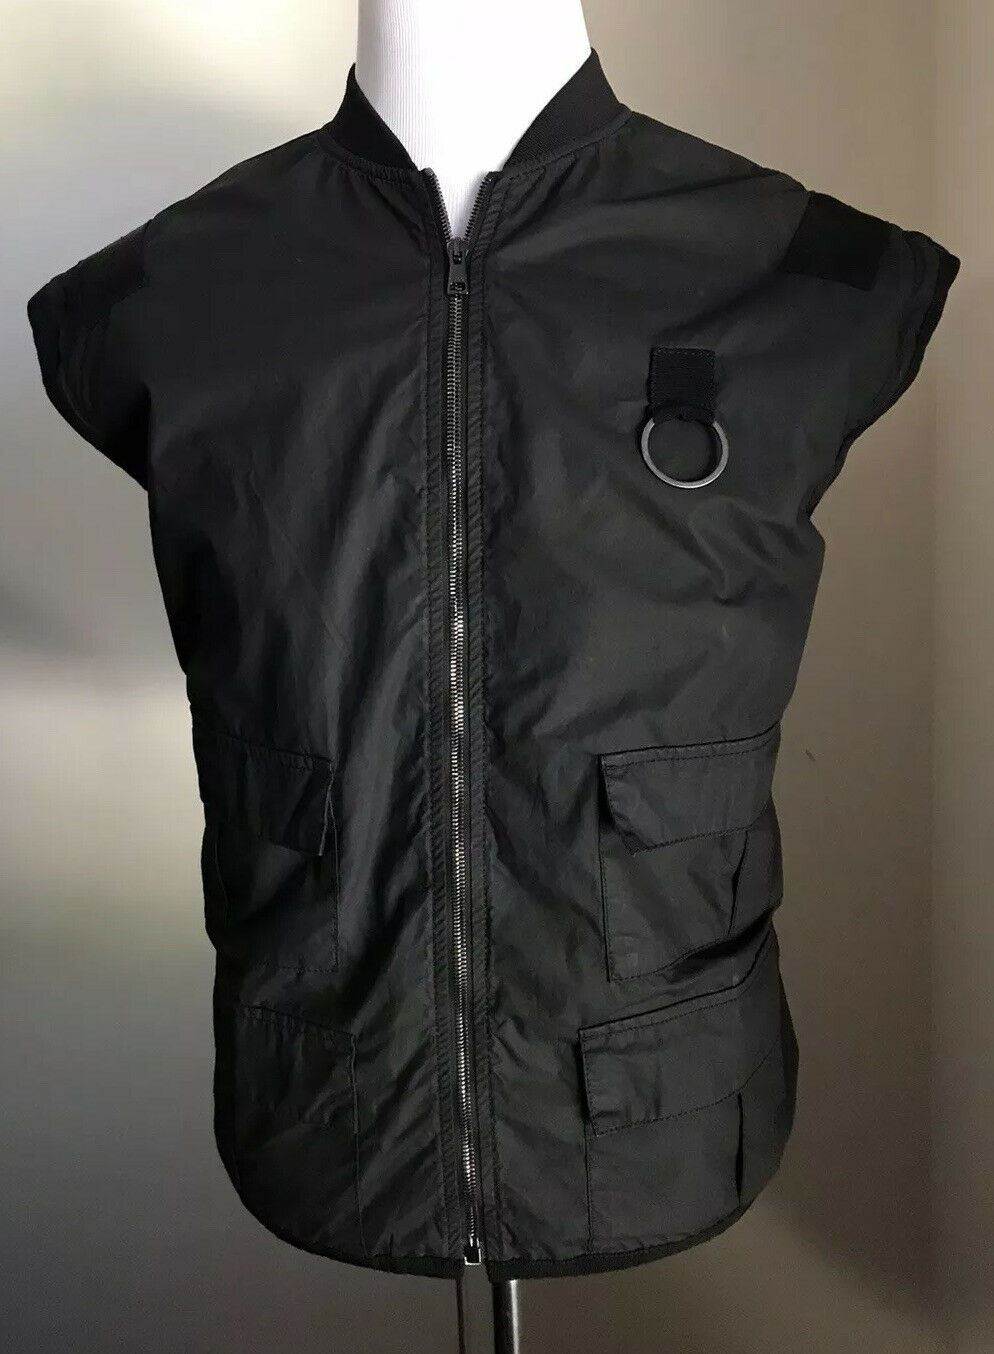 New $2800 Gucci Mens Coat Jilet Vest Jacket Black 40 US ( 50 Eu ) Italy